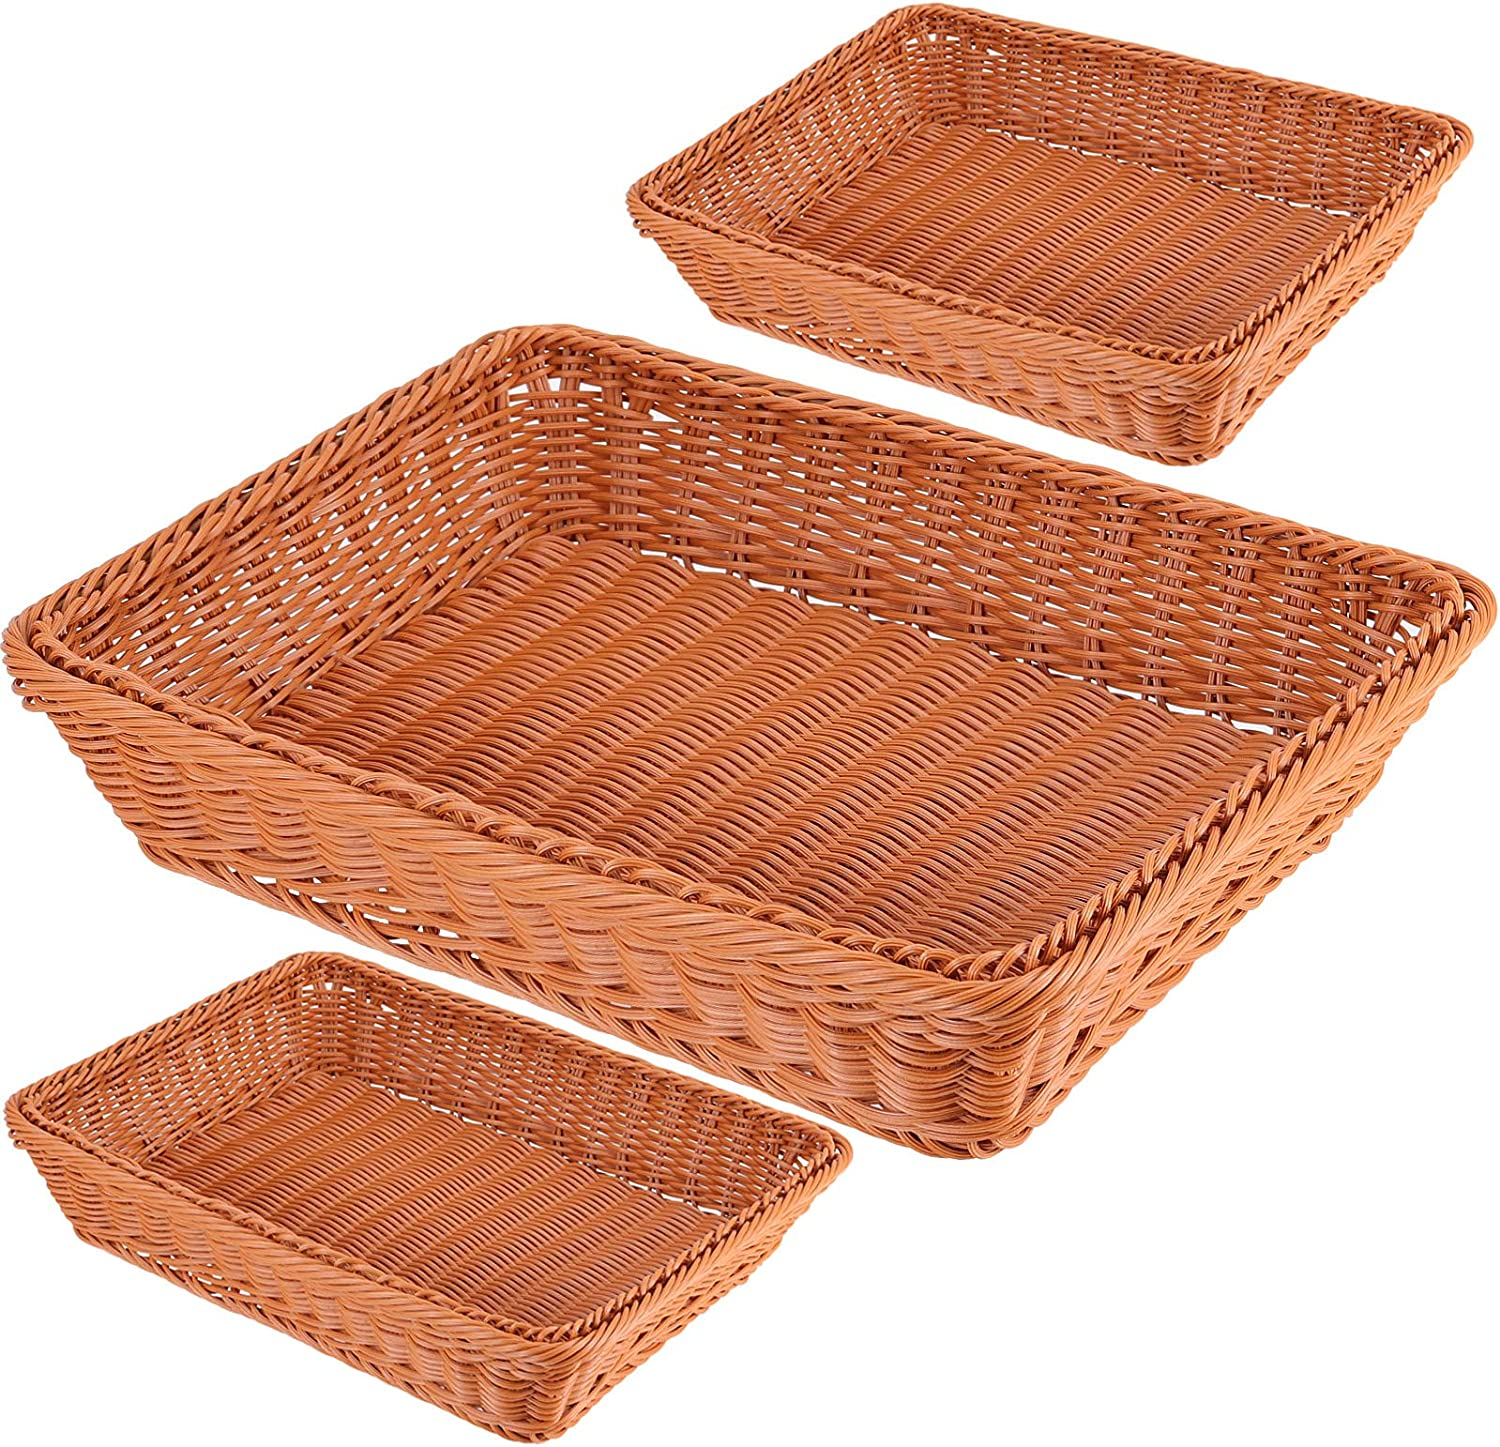 3 Packs 12 Inch Poly Wicker Bread Baskets, HAKZEON Wicker Woven Basket Fruit Vegetable Basket Food Serving Storage Tabletop Display for Home Kitchen Restaurant